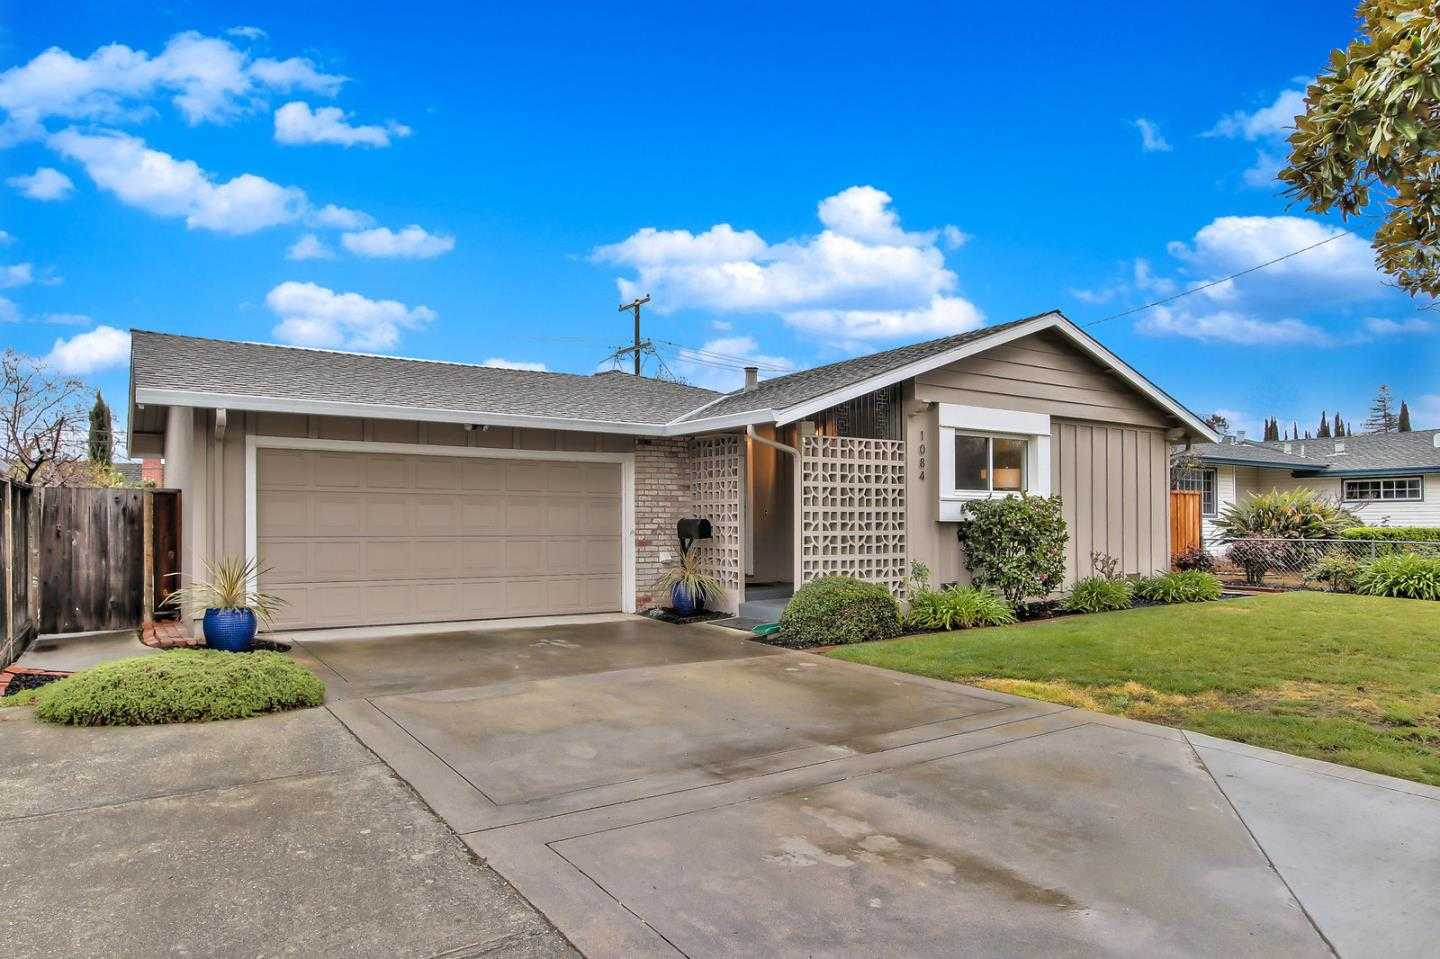 $1,388,000 - 3Br/2Ba -  for Sale in San Jose